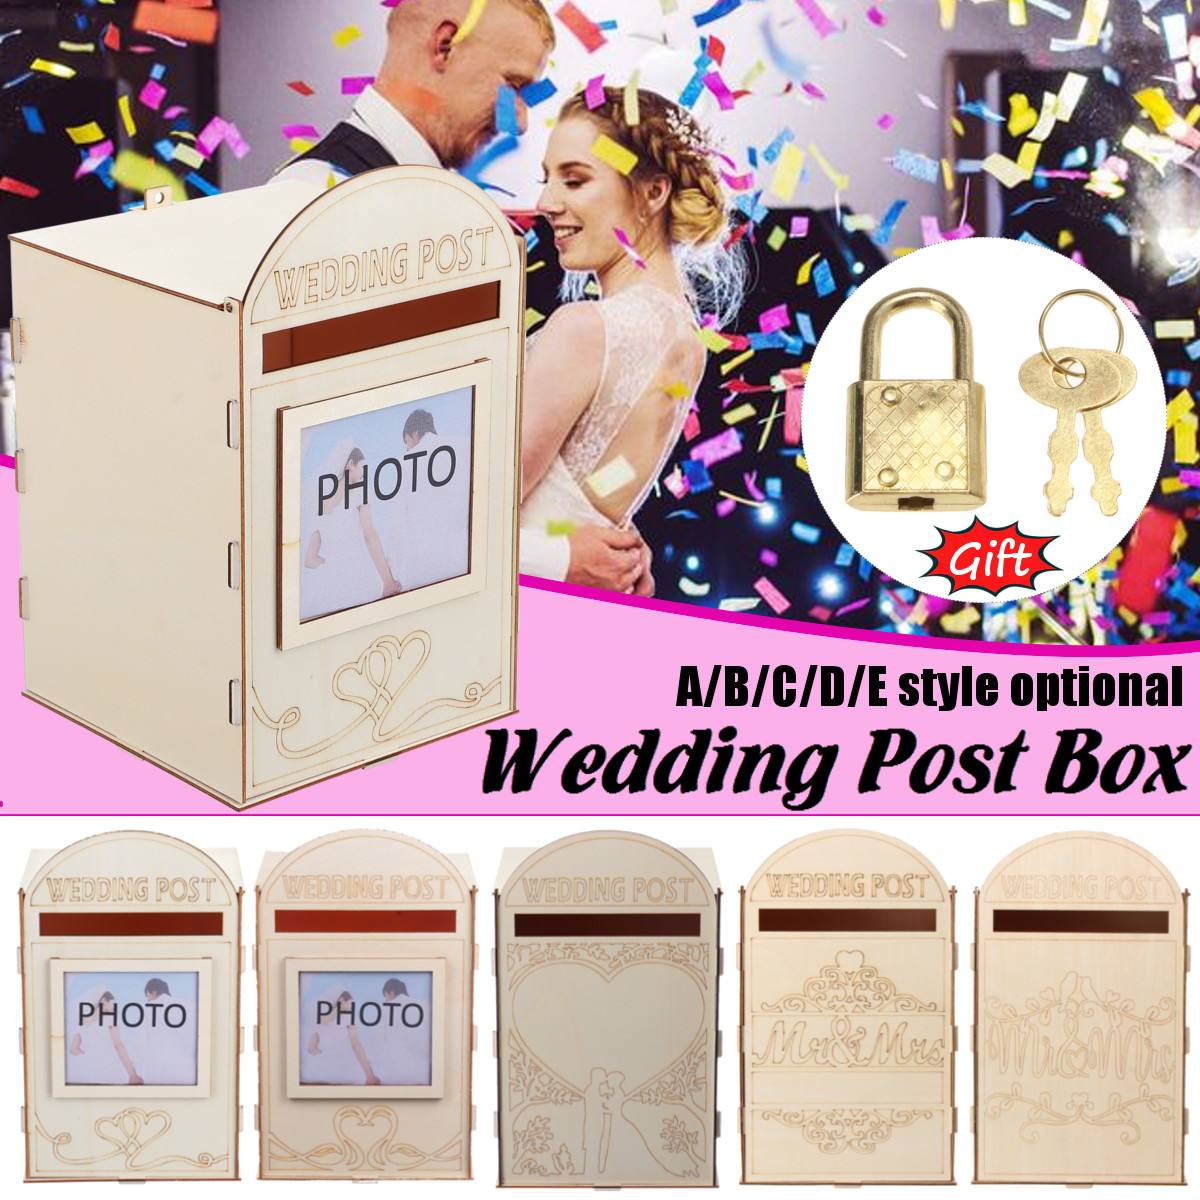 Diy Wooden Wedding Supplies Mailbox Royal Mail Style Ornaments Wedding Post Box Card Boxes With A Key